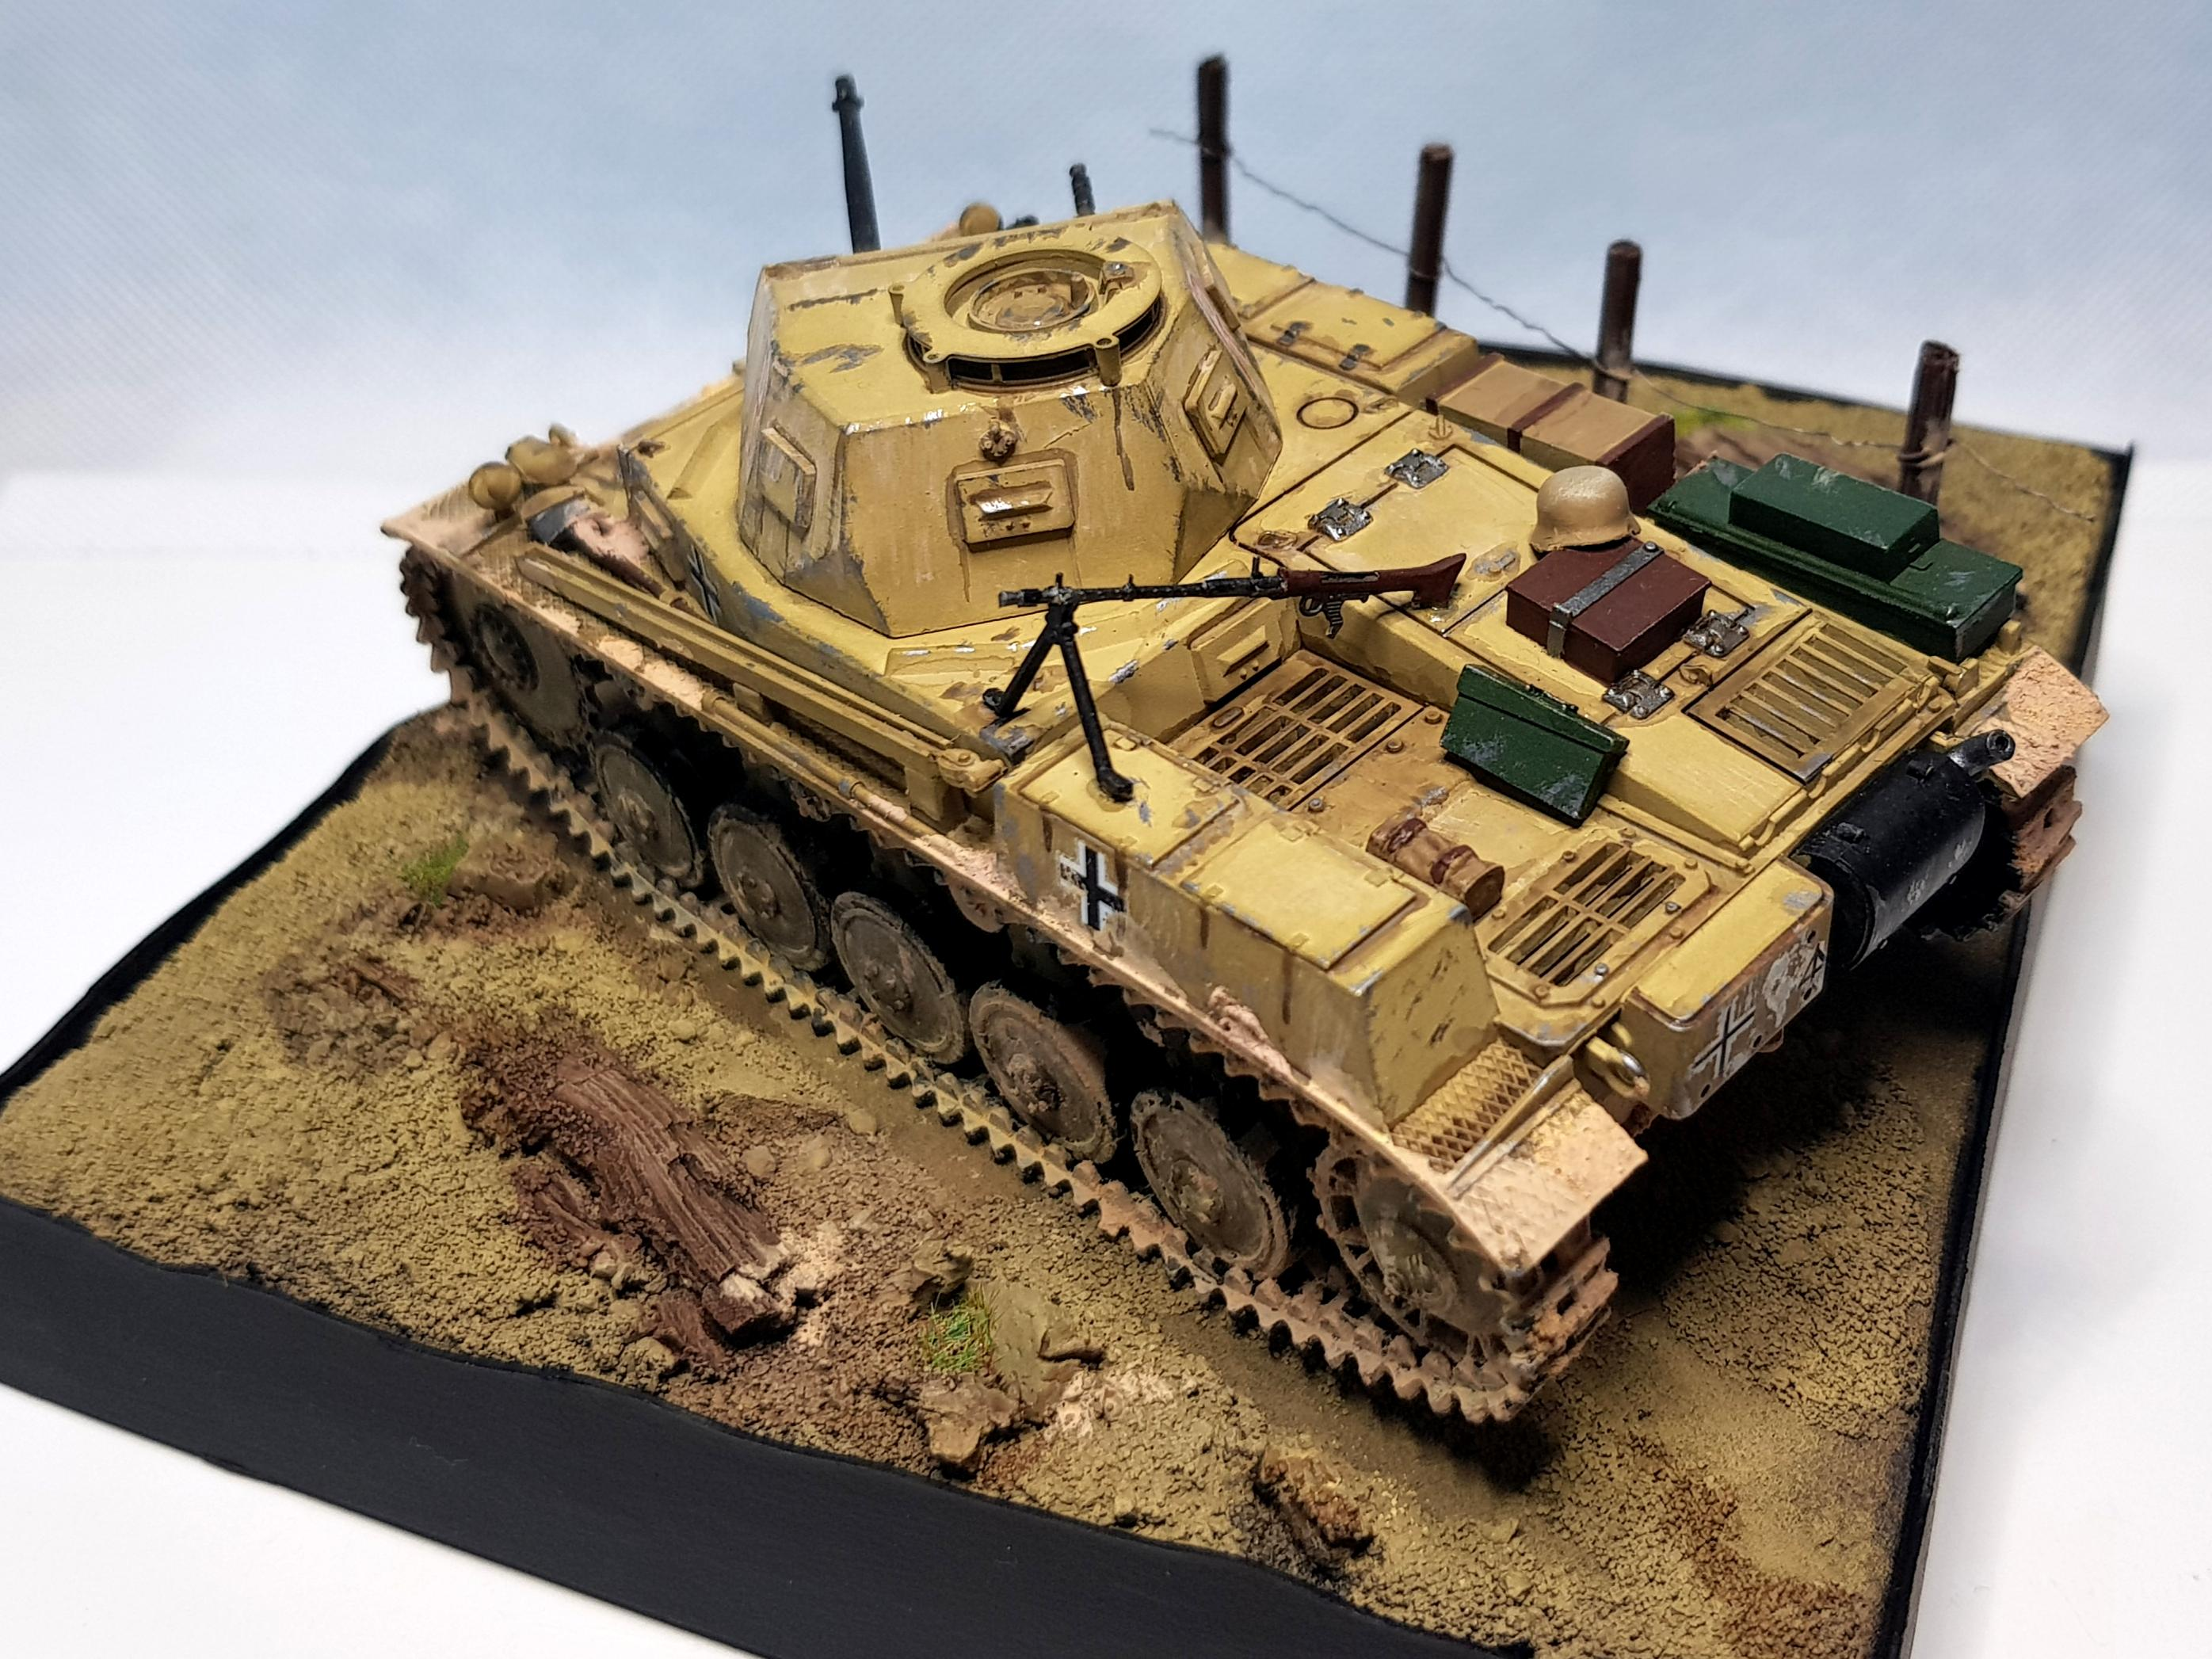 Afrika Korps, Allies, Armor, Axis, Diorama, Light Tank, Modern Warfare, Painting Challenge, Panzer, Scale, Scale Model, Tank, World War 2